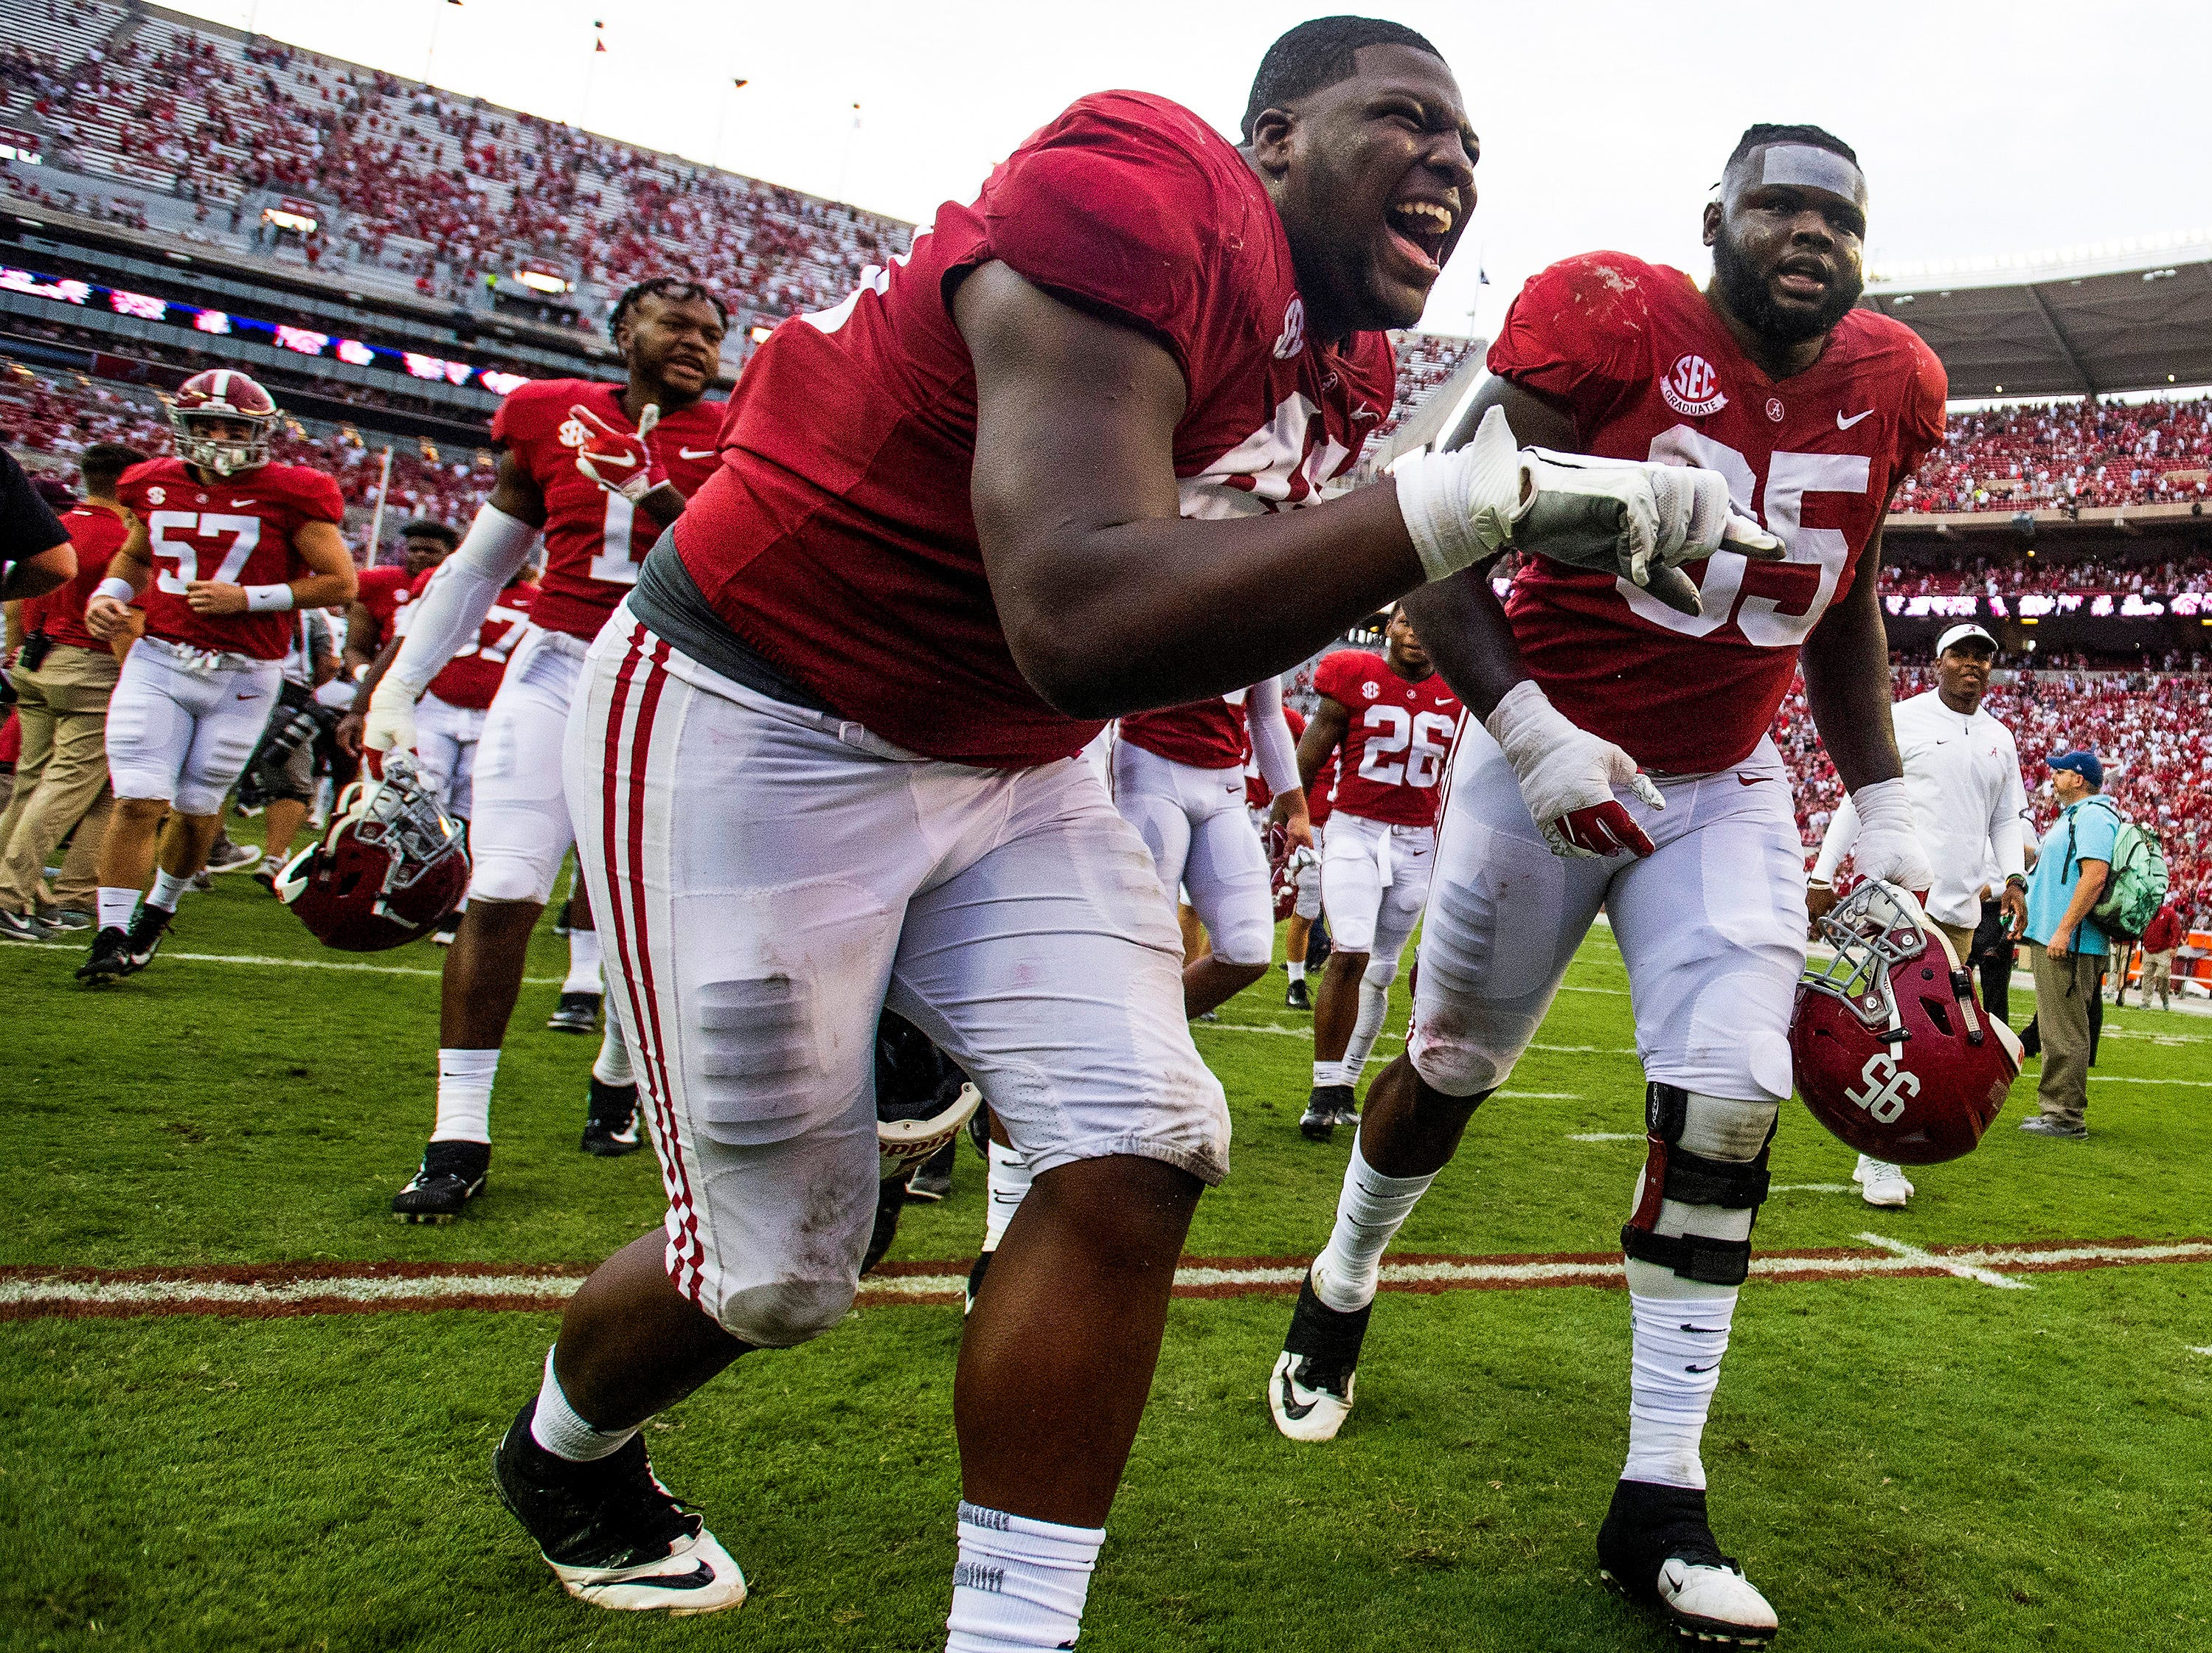 Alabama defensive linemen Phidarian Mathis (48) and Johnny Dwight (95) celebrate Dwight's sack to end the game in Tuscaloosa, Ala., on Saturday September 22, 2018.